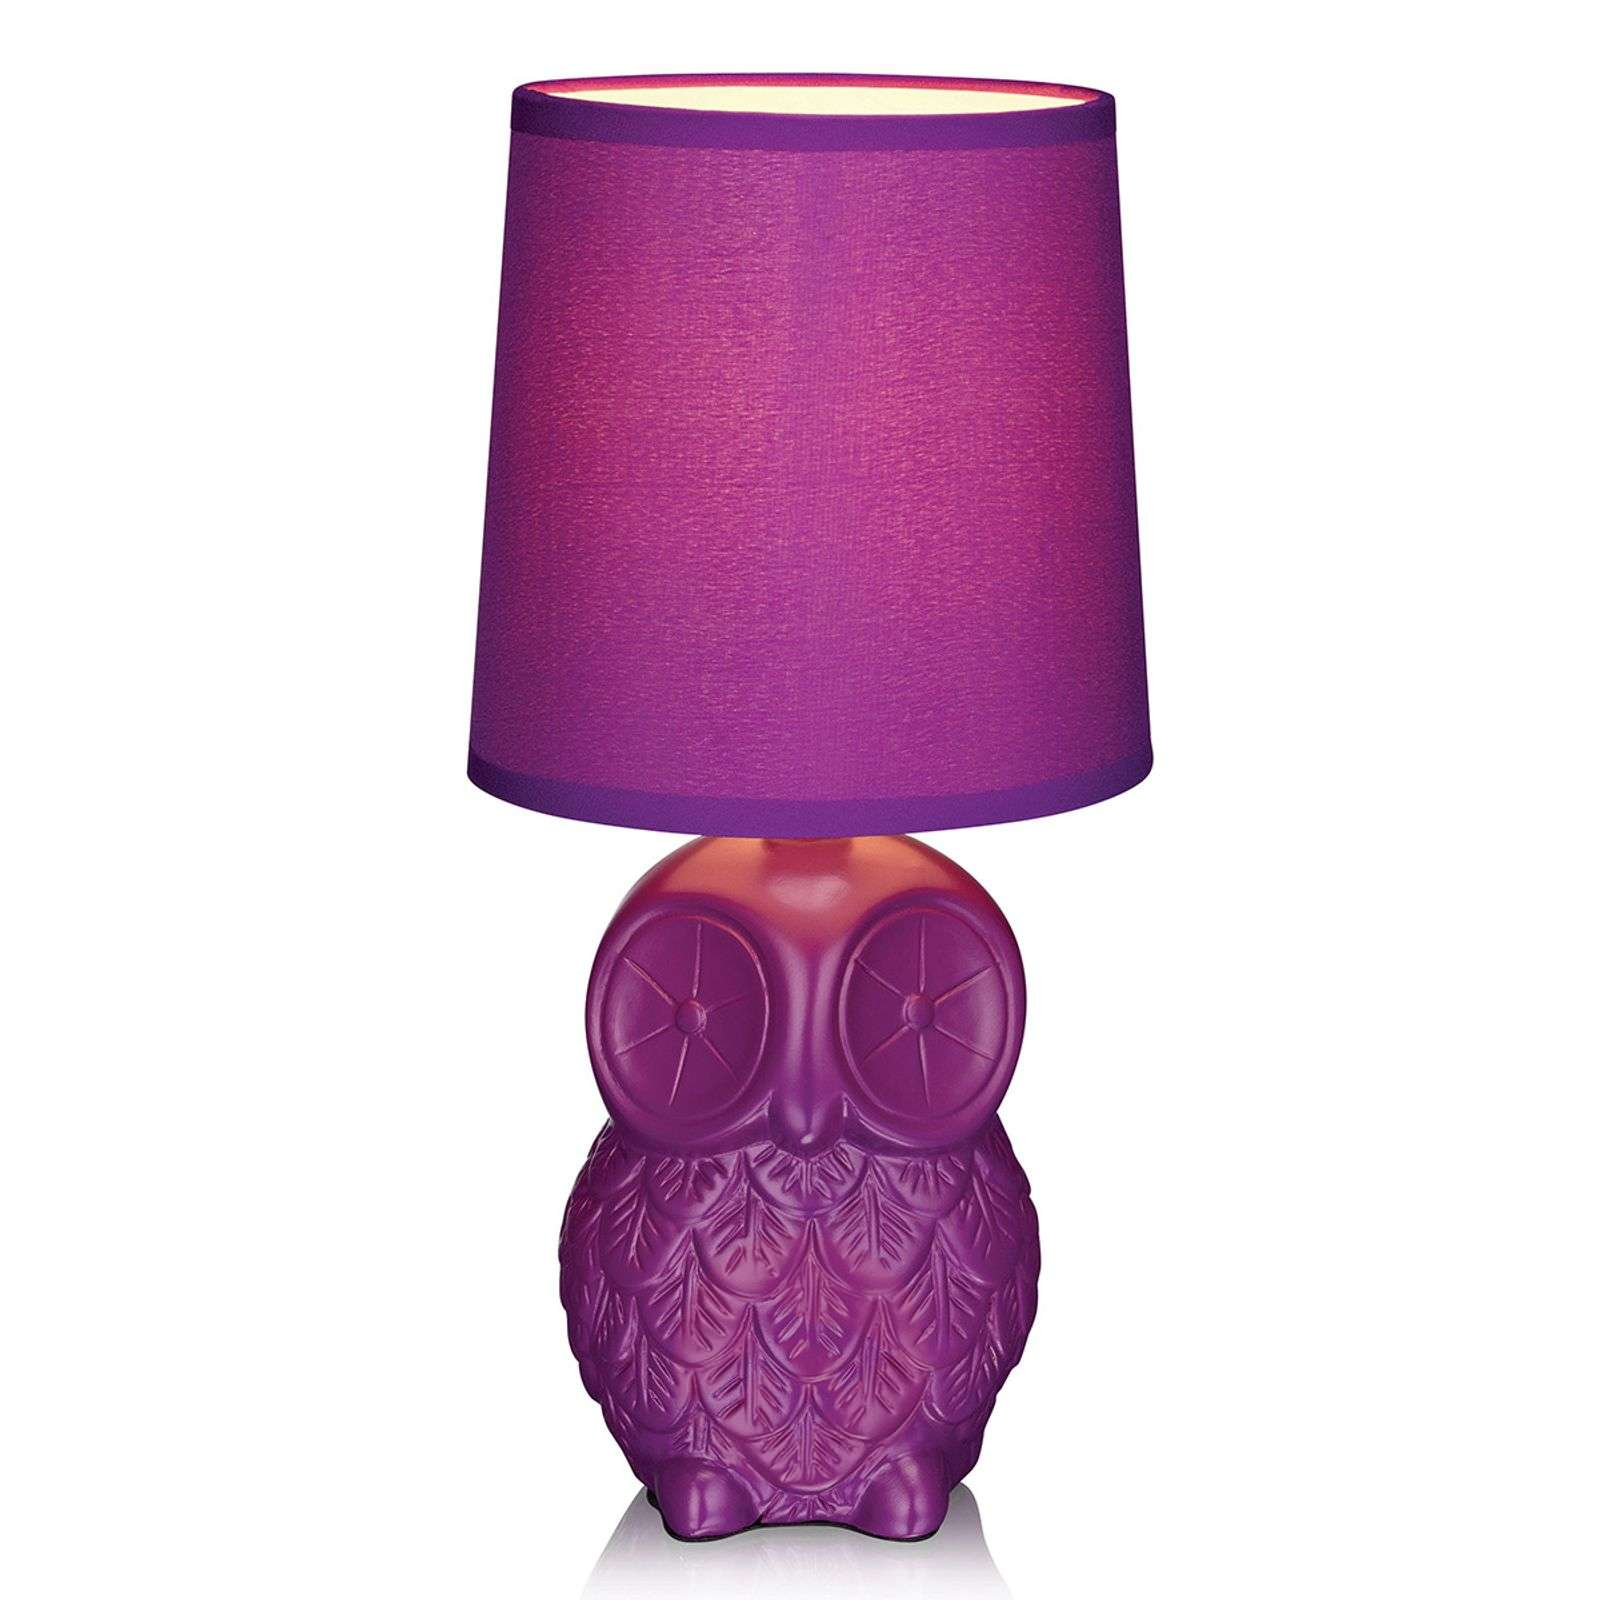 Helge owl table lamp with purple fabric lampshade-6506126-01